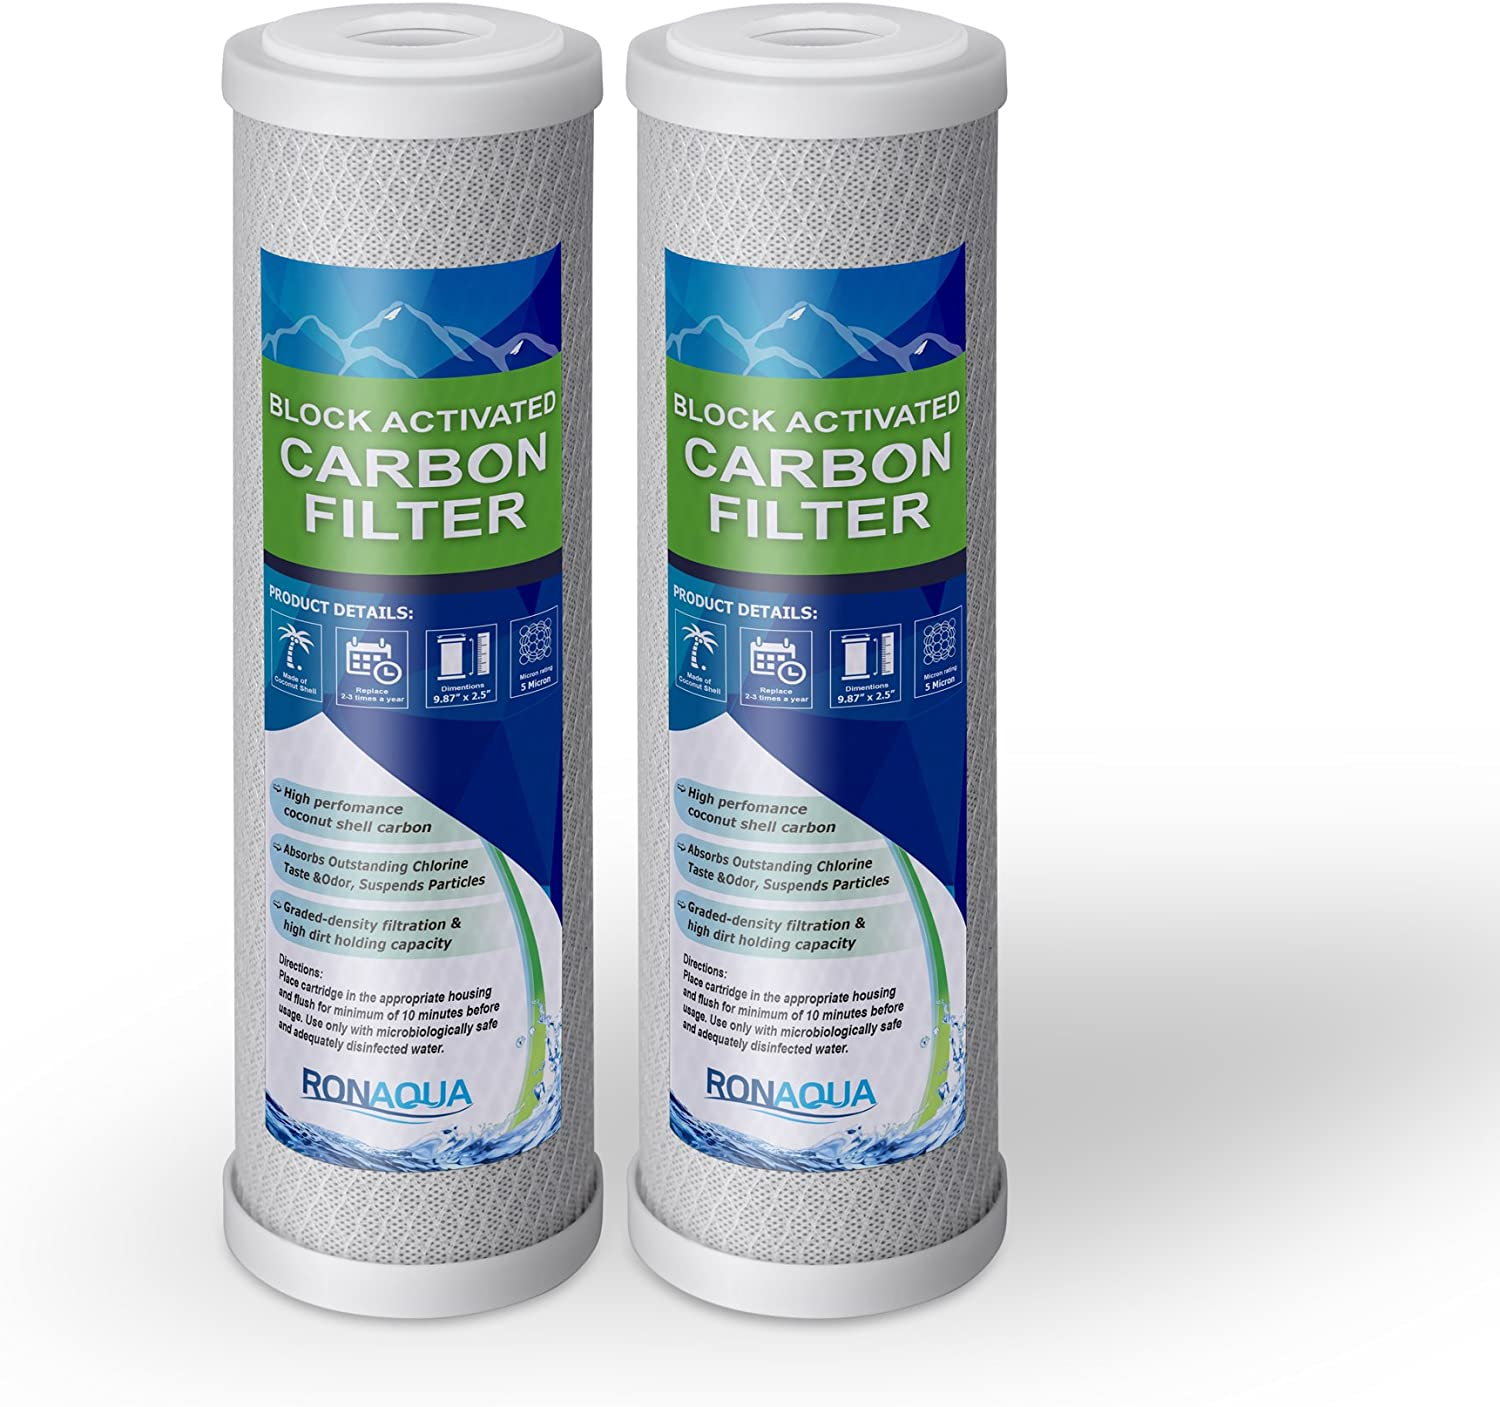 Aquaboon Coconut Shell Water Filter Cartridge Universal 5 Micron 10 inch Cartridge FXWTC Activated Carbon Block CTO WHKF-WHWC 25-PACK WHEF-WHWC WFPFC8002 Compatible with DWC30001